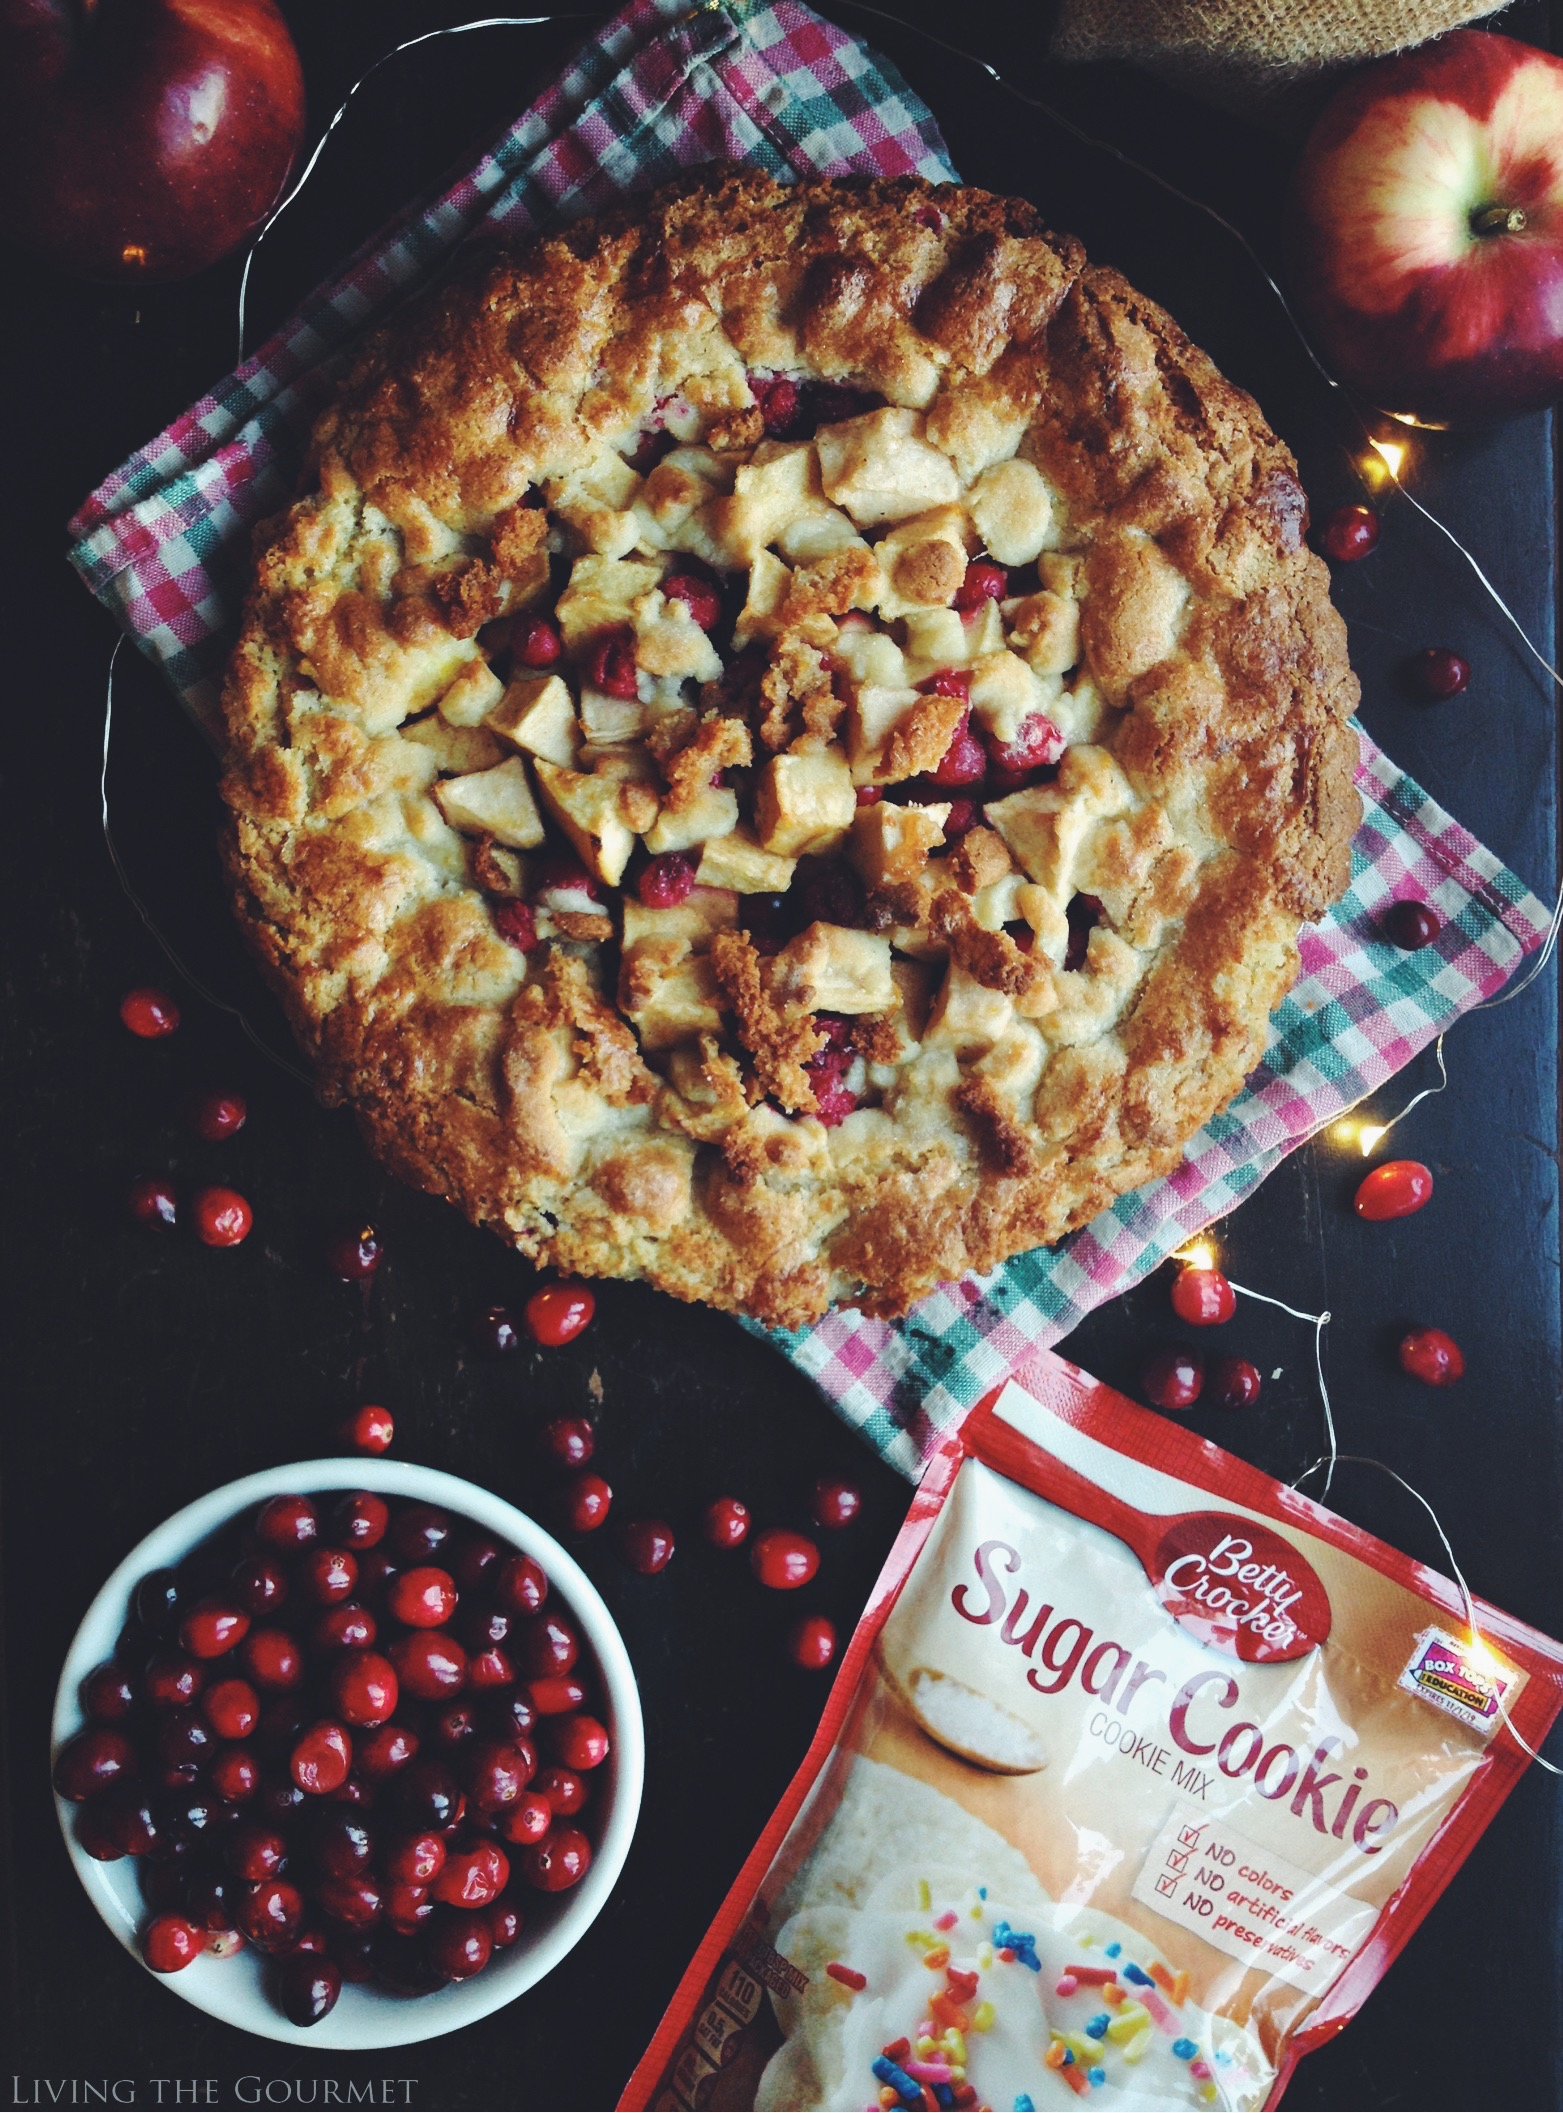 Living the Gourmet: Sugar Cookie Holiday Tart | #bakingwithbetty #ad